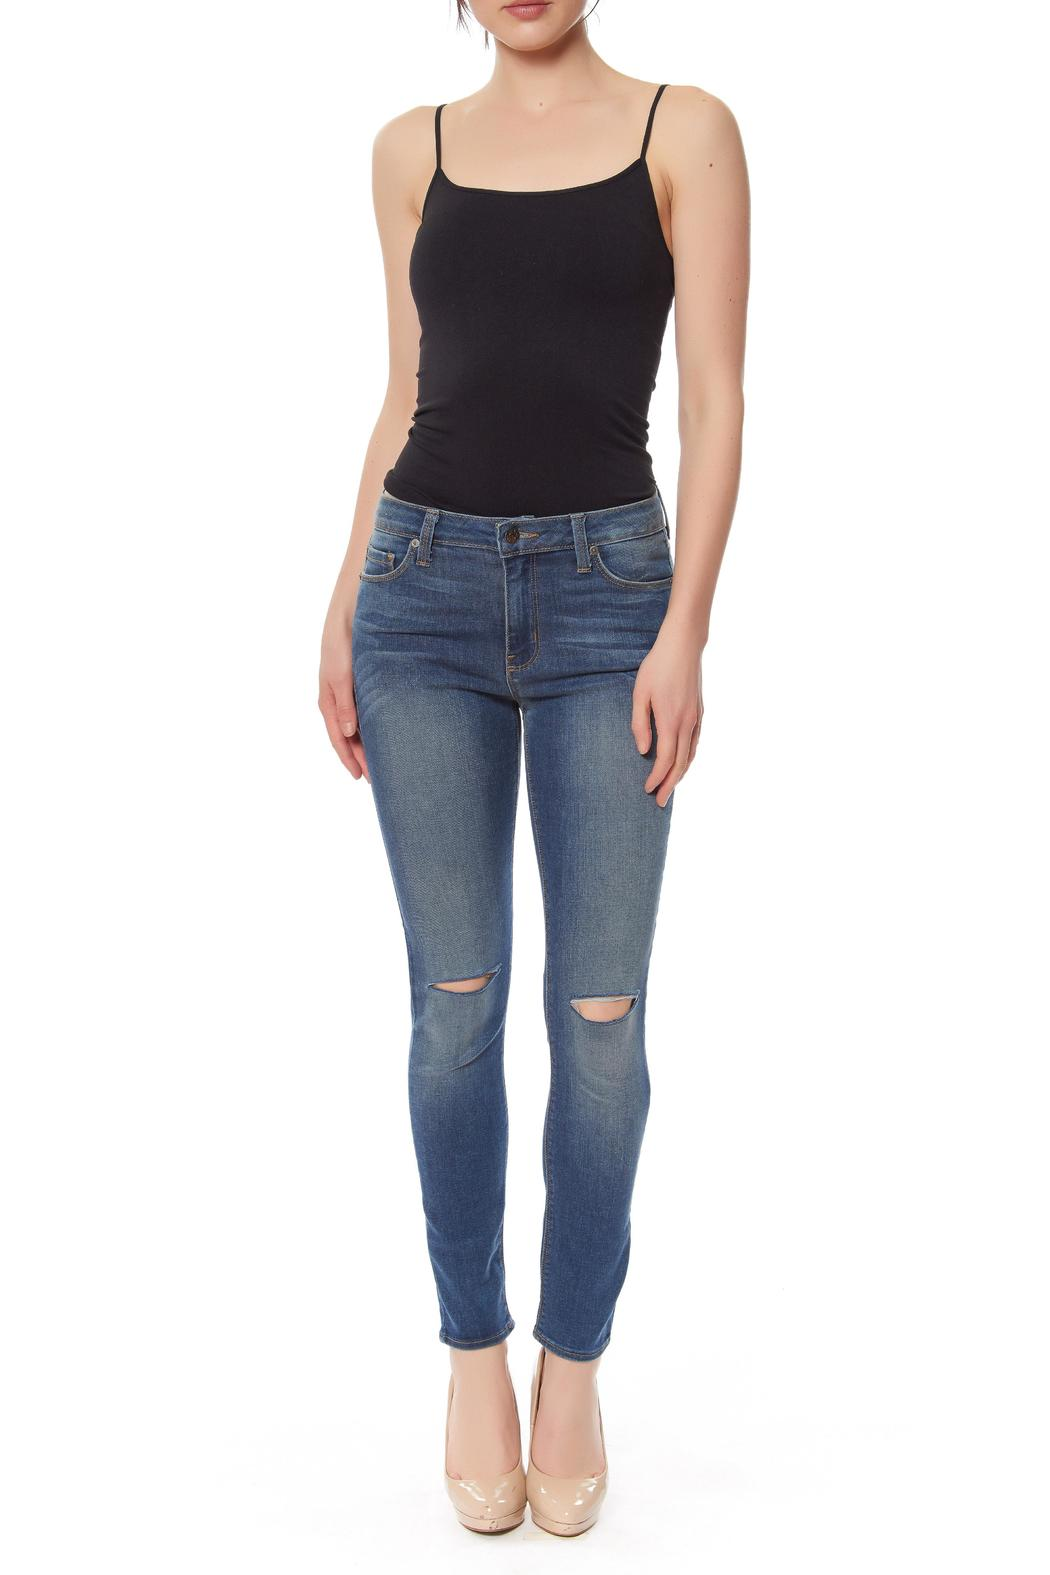 just black Overdyed Knee-Slit Jeans from Manhattan by Montmartre ...